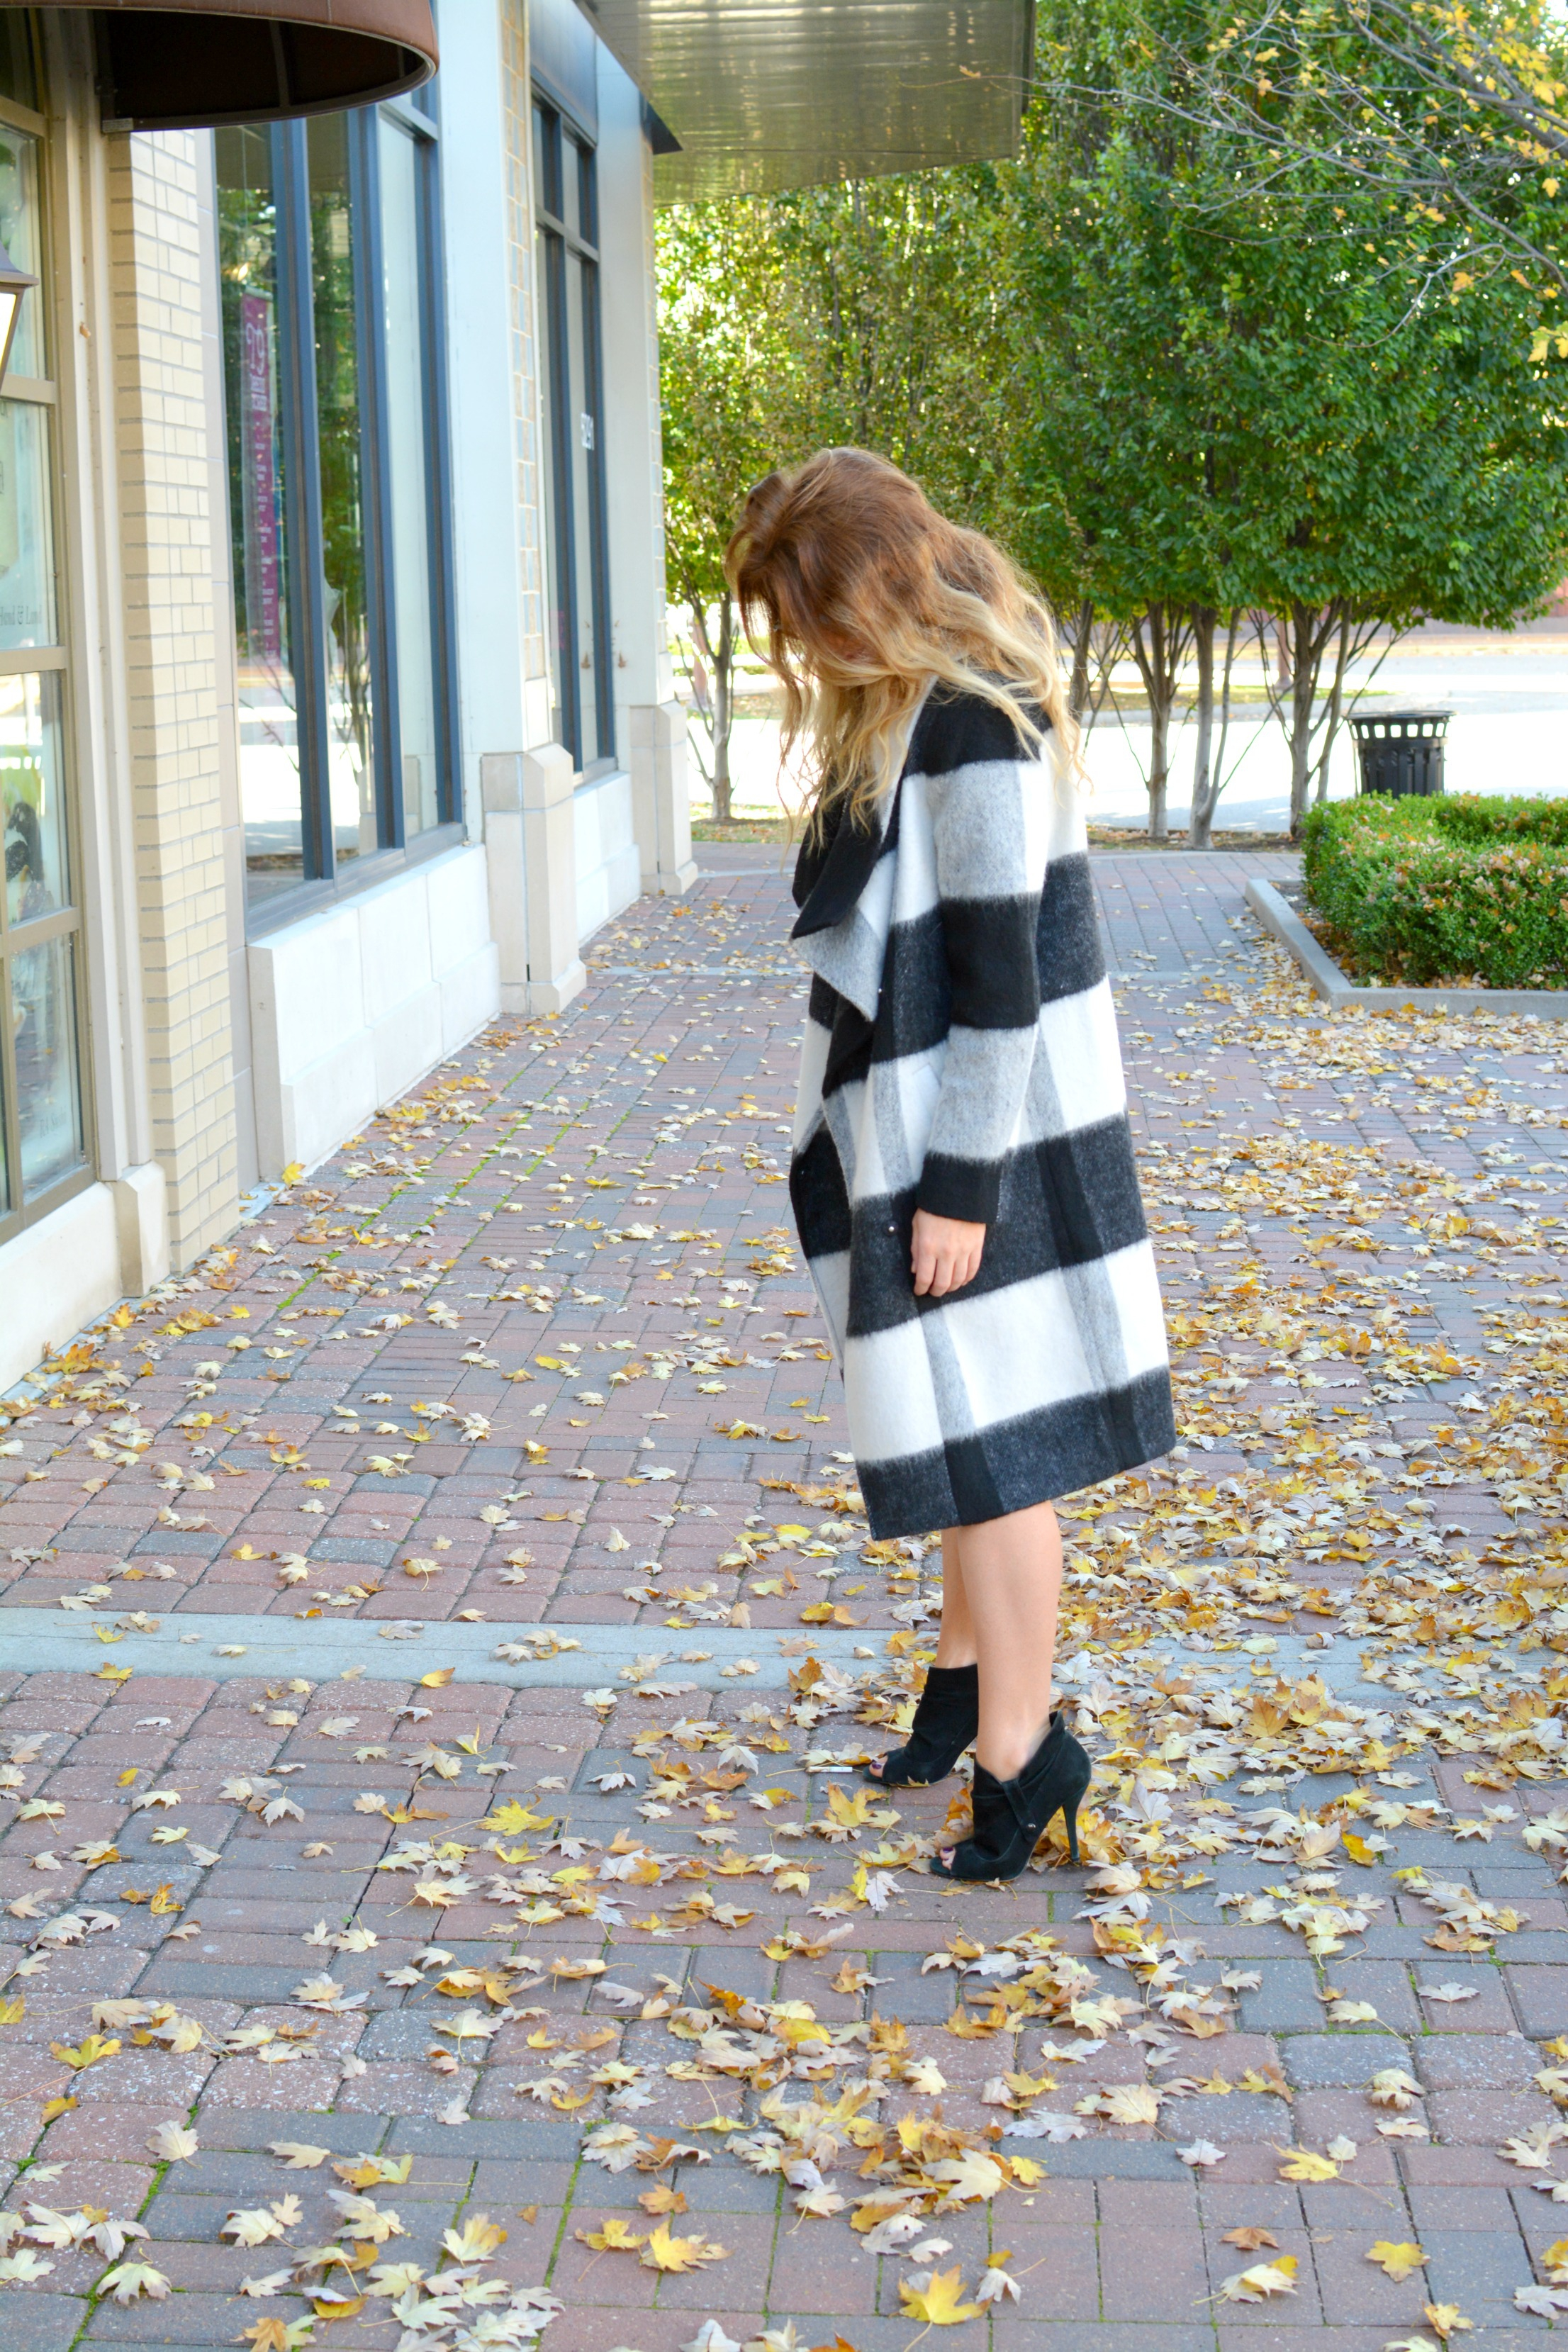 Ashley from LSR in a black and white striped coat and tweed dress